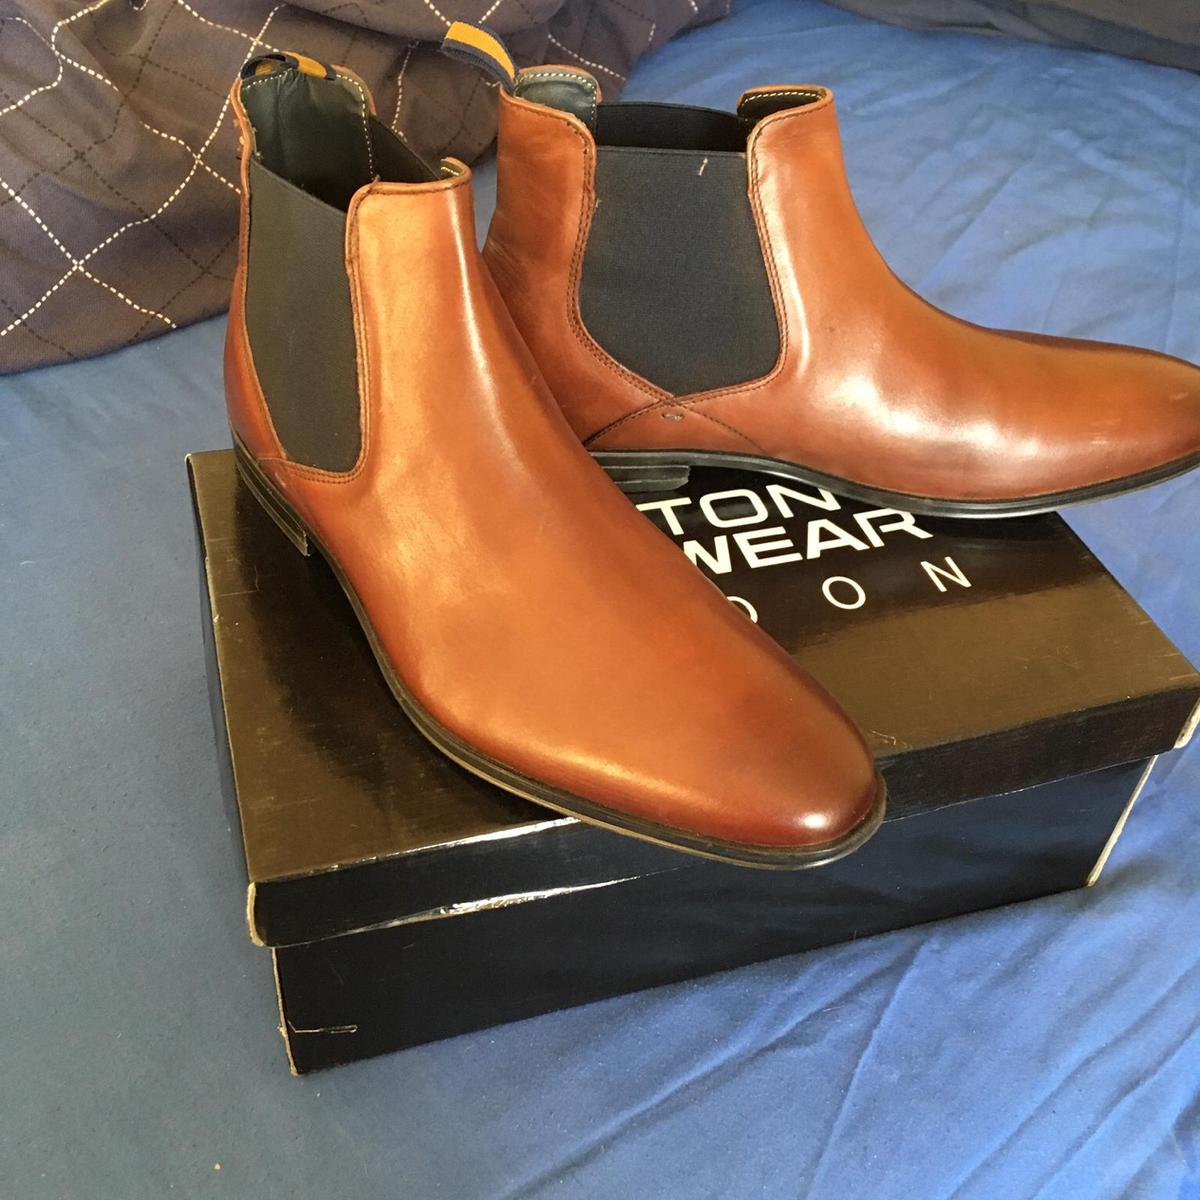 Men's mid brown boots Size 12 Worn for an hour if that